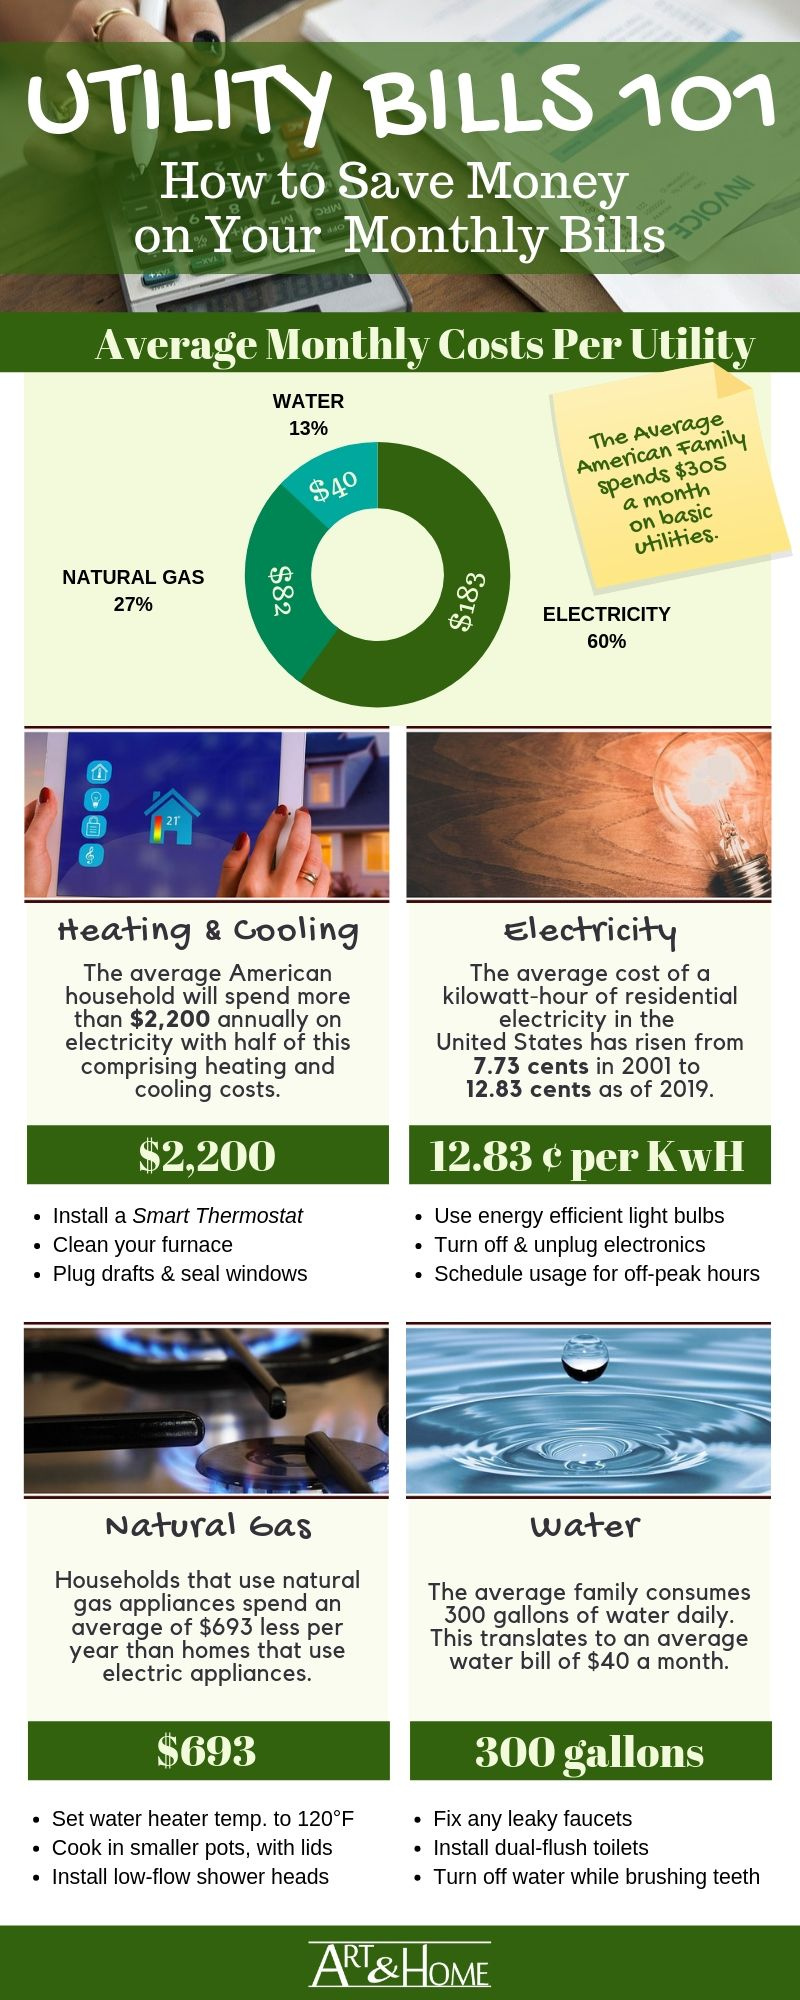 How to Save Money on Your Monthly Utility Bills Infographic